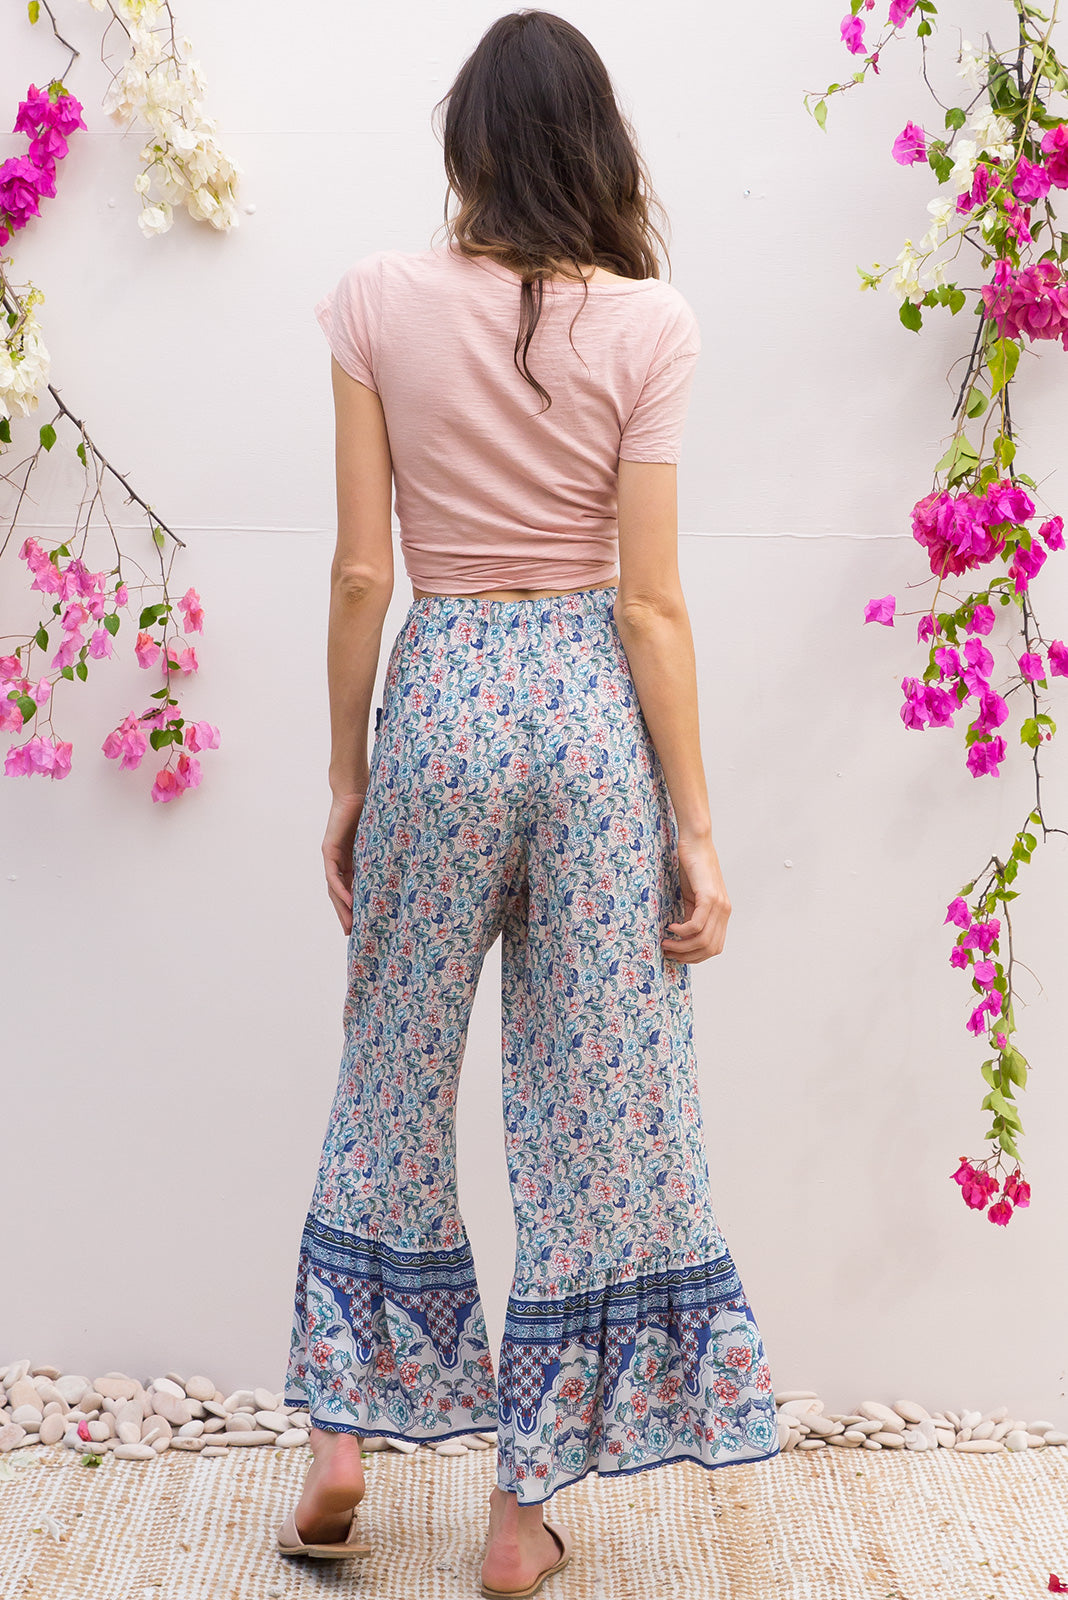 Wandering Bliss Blue Pants feature a slim leg with a wide frill around the hem for a retro vintage style, boho inspired border print design is printed onto woven rayon